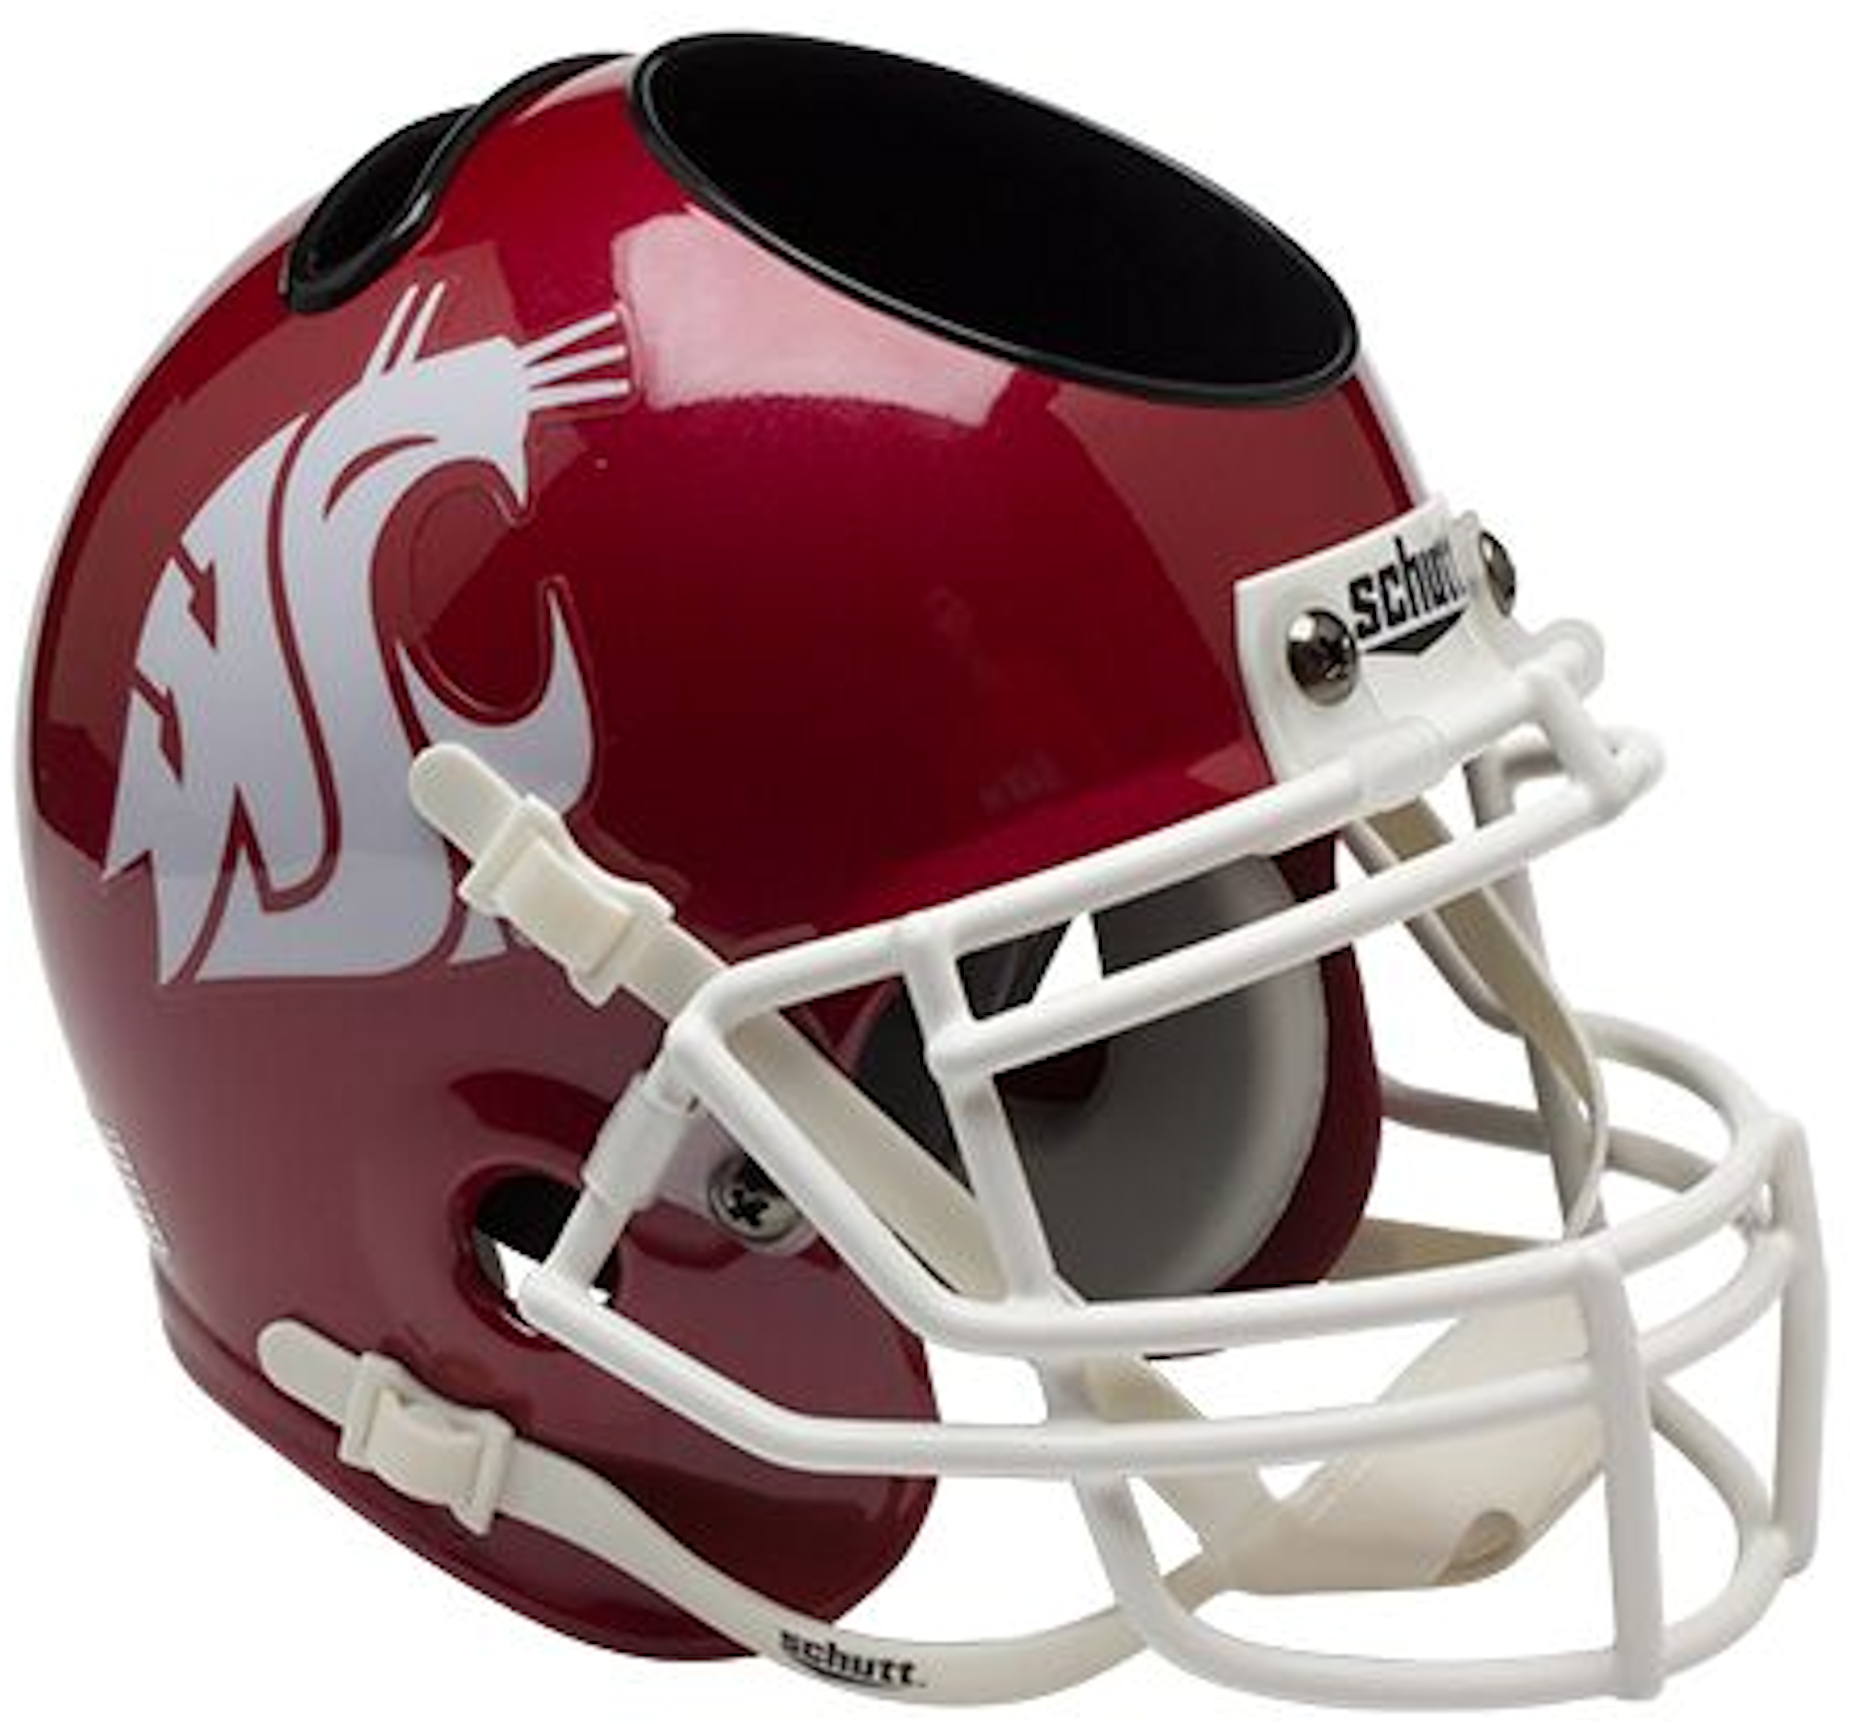 Washington State Cougars Miniature Football Helmet Desk Caddy <B>Scarlet</B>